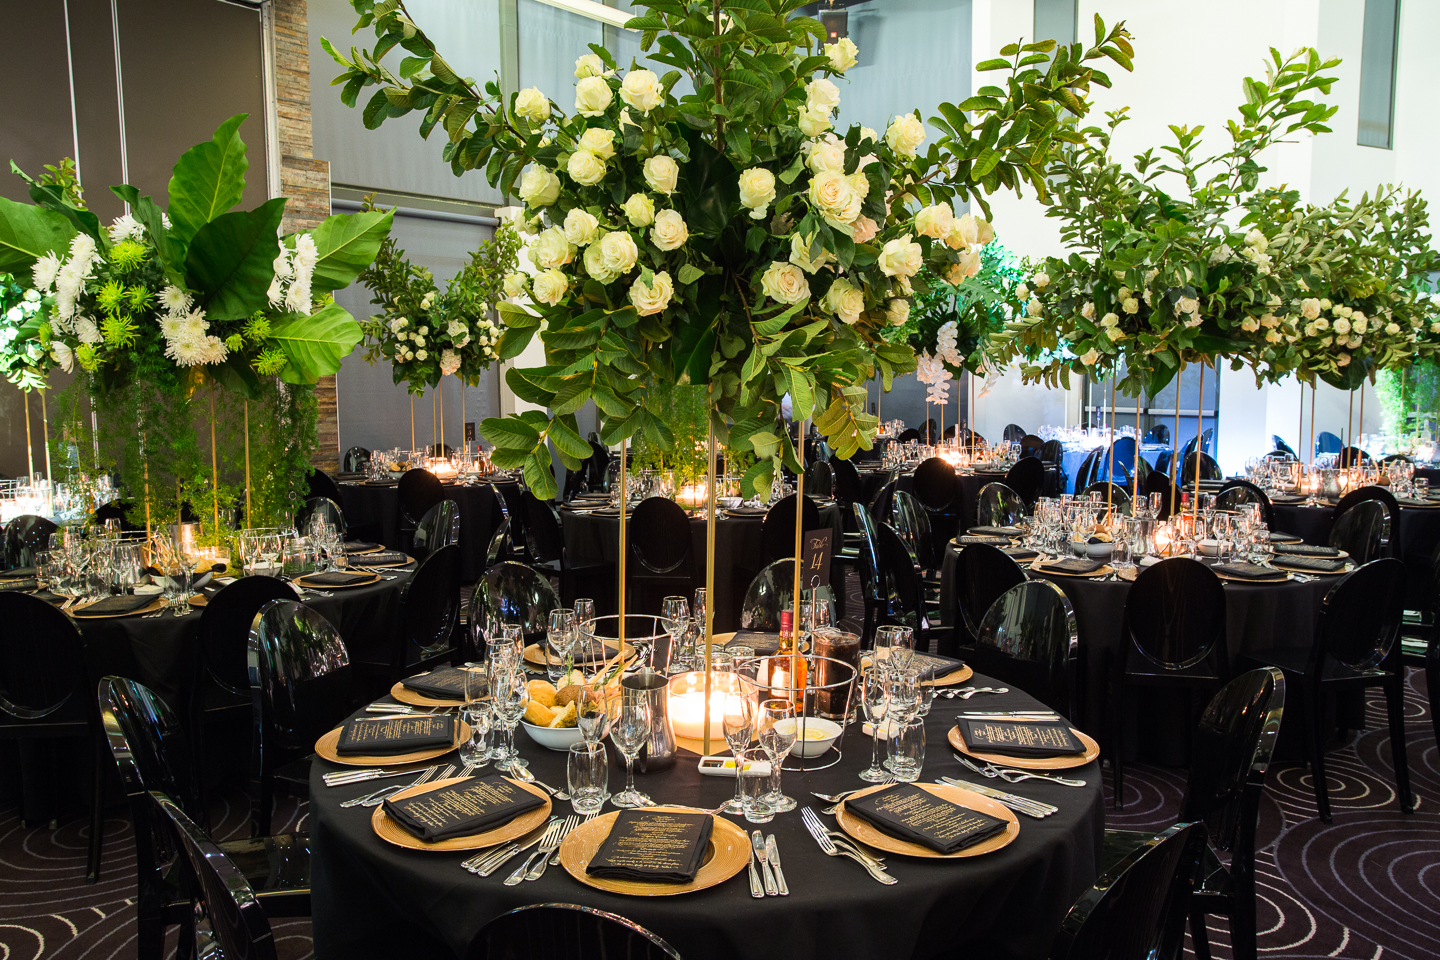 Waterview_wedding_centrepiece_gold_stand_glass_charger_plates_black_green.jpg